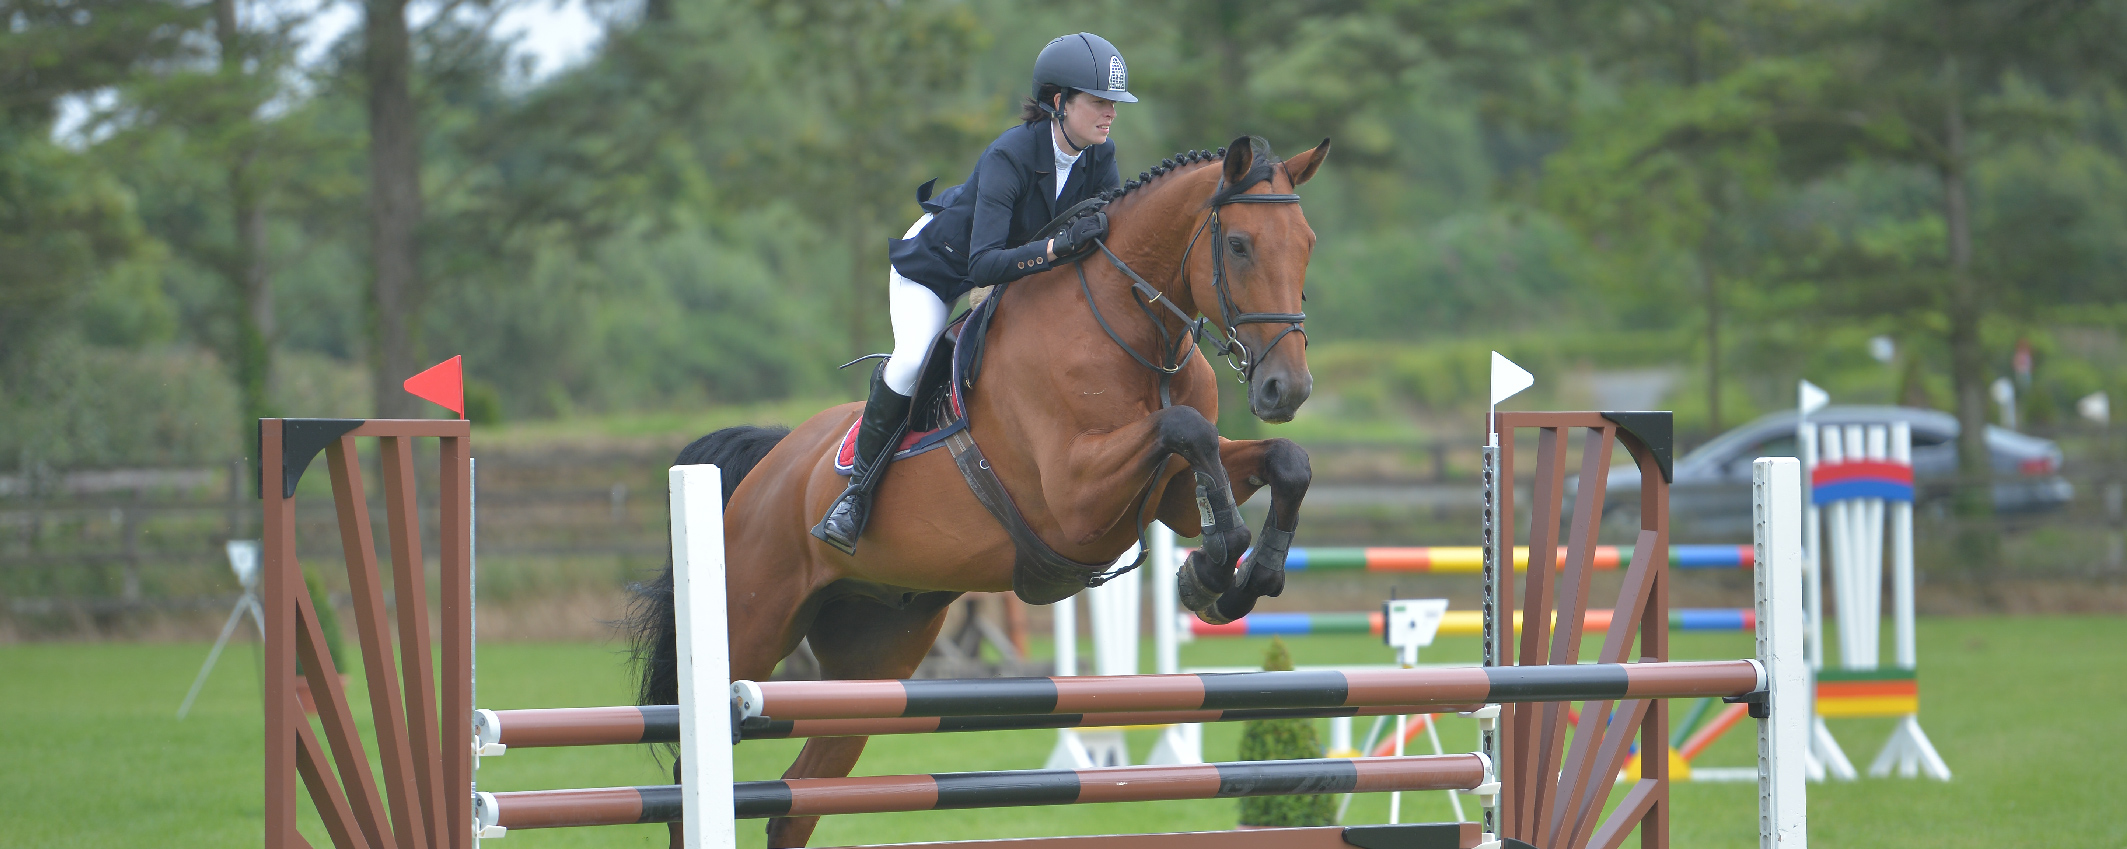 Wexford Equestrian - LST (16/07/16)